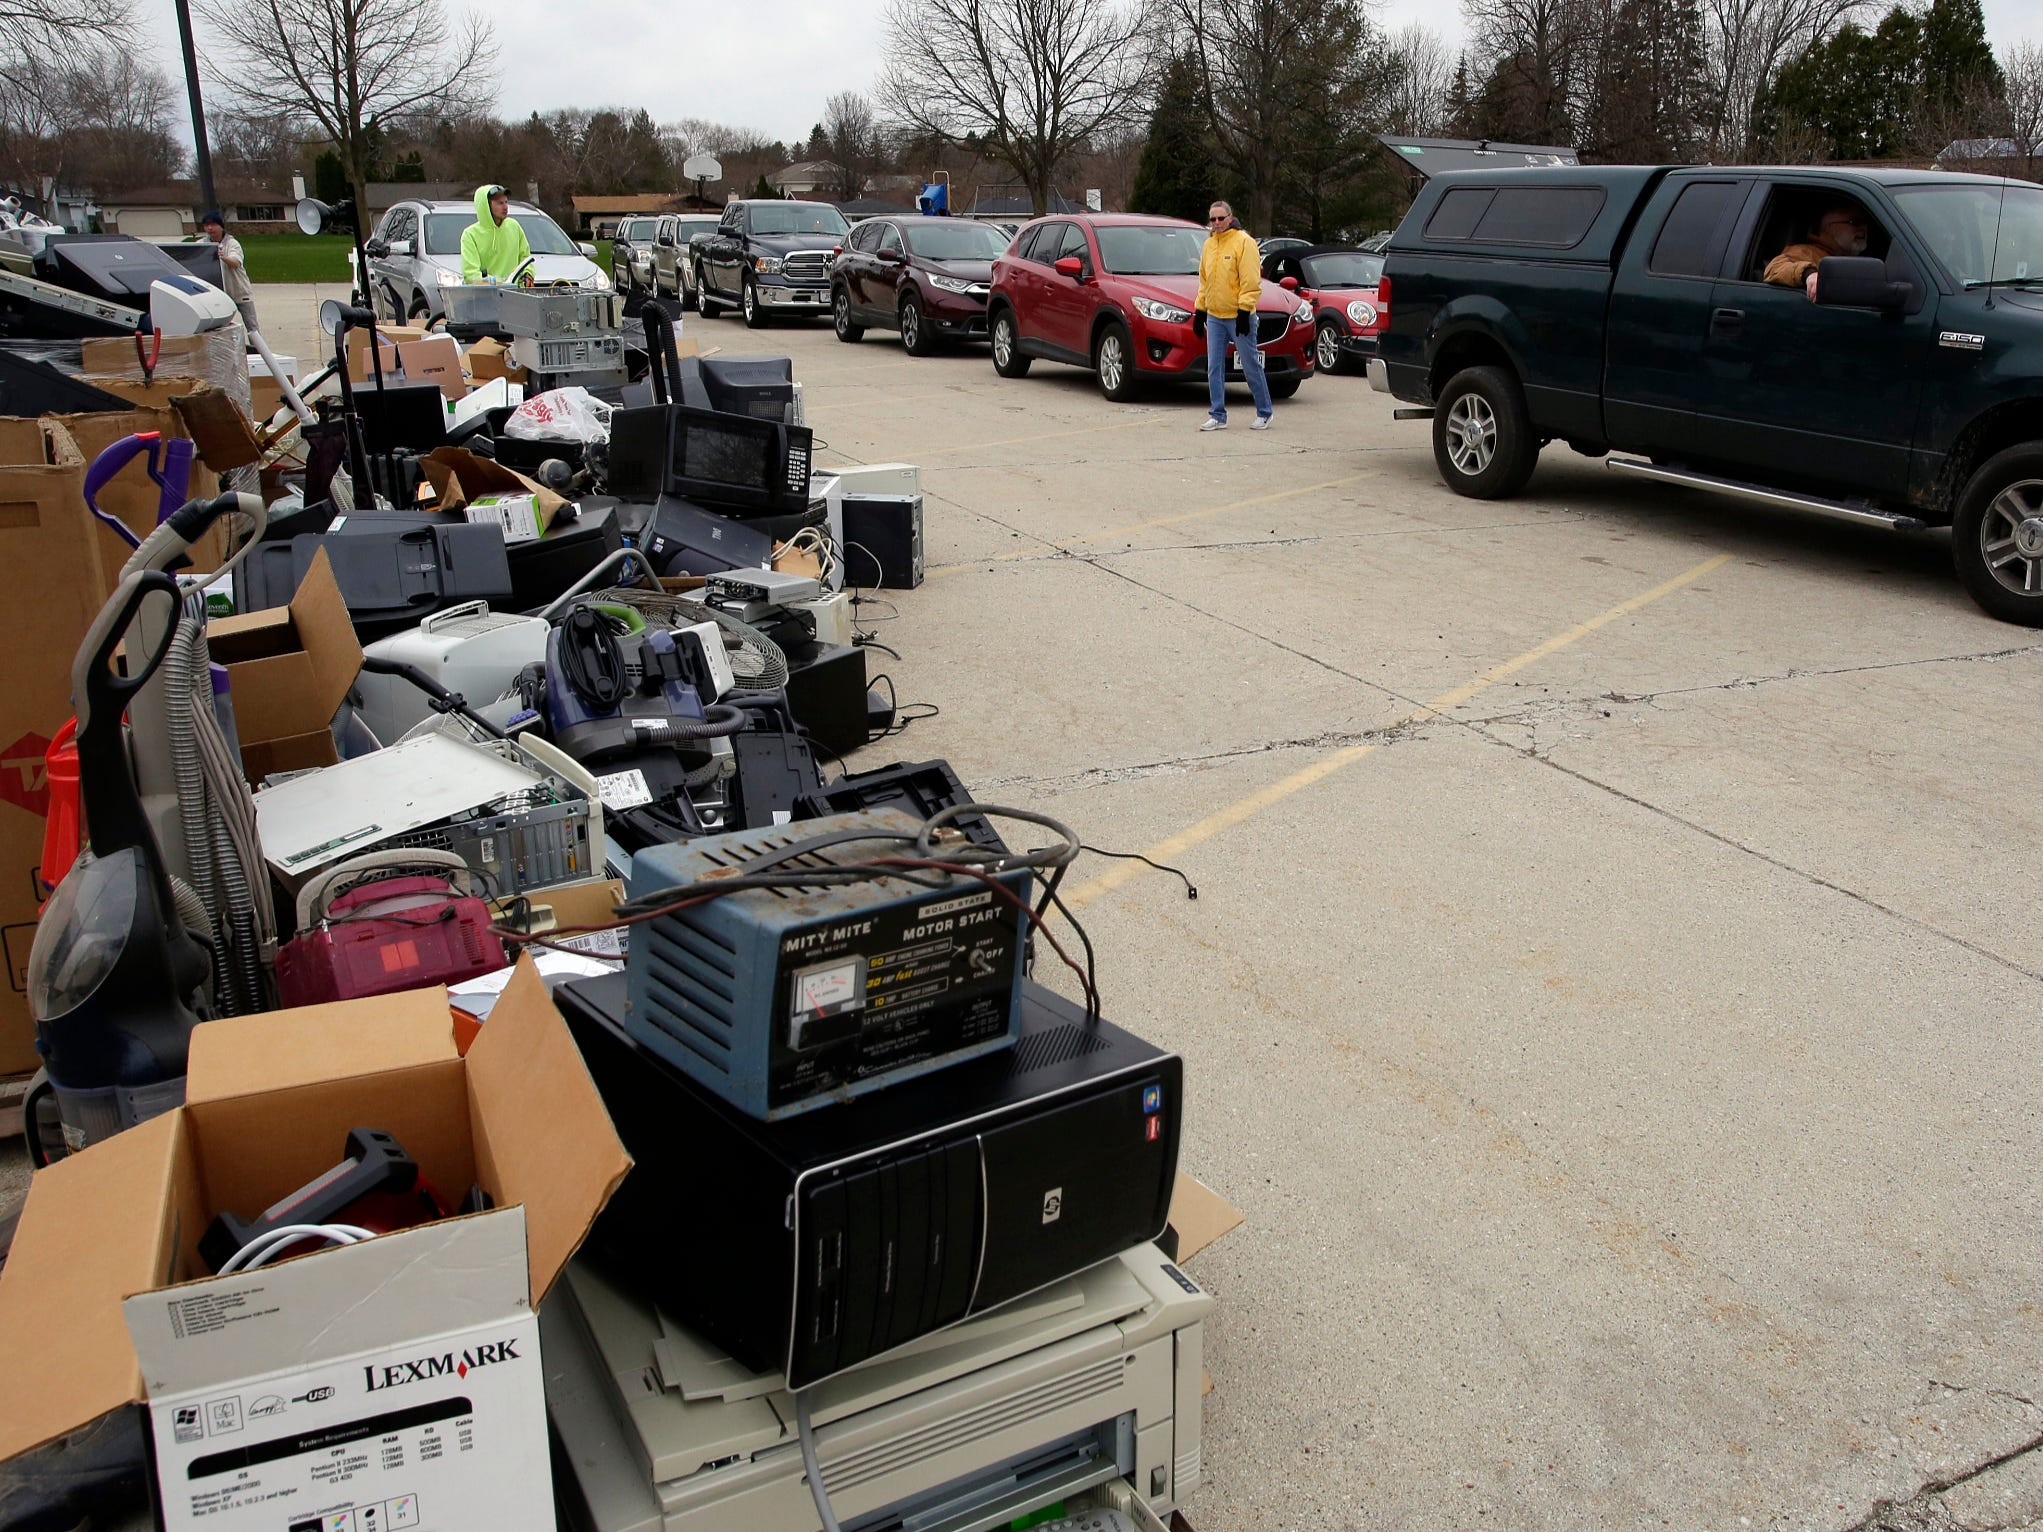 A scene from the recycling event at Ebenezer United Church of Christ, Saturday, April 27, 2019, in Sheboygan, Wis.